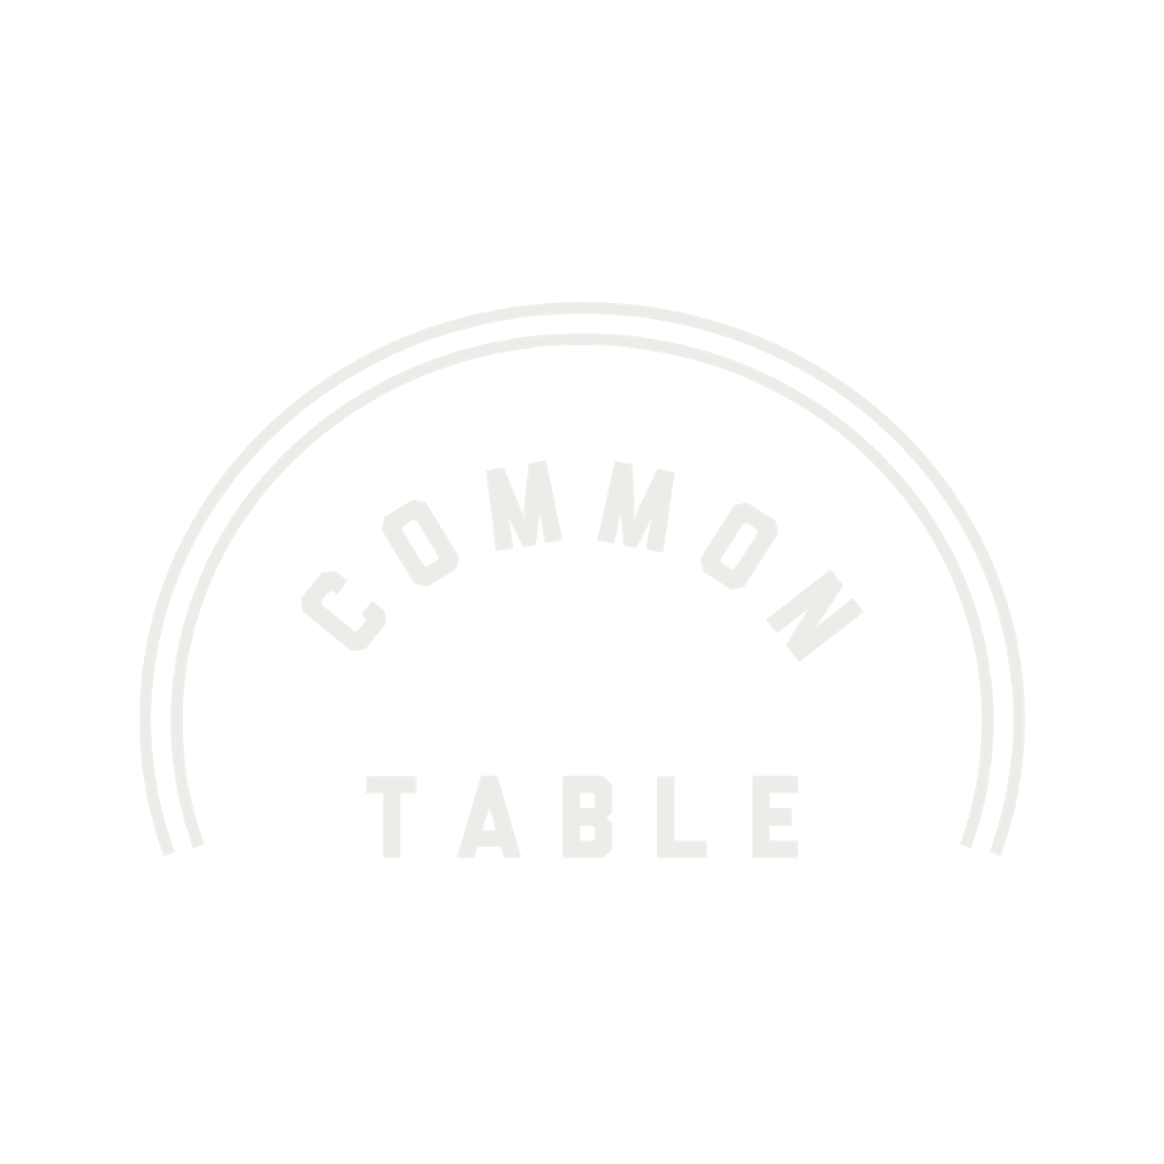 Common Table